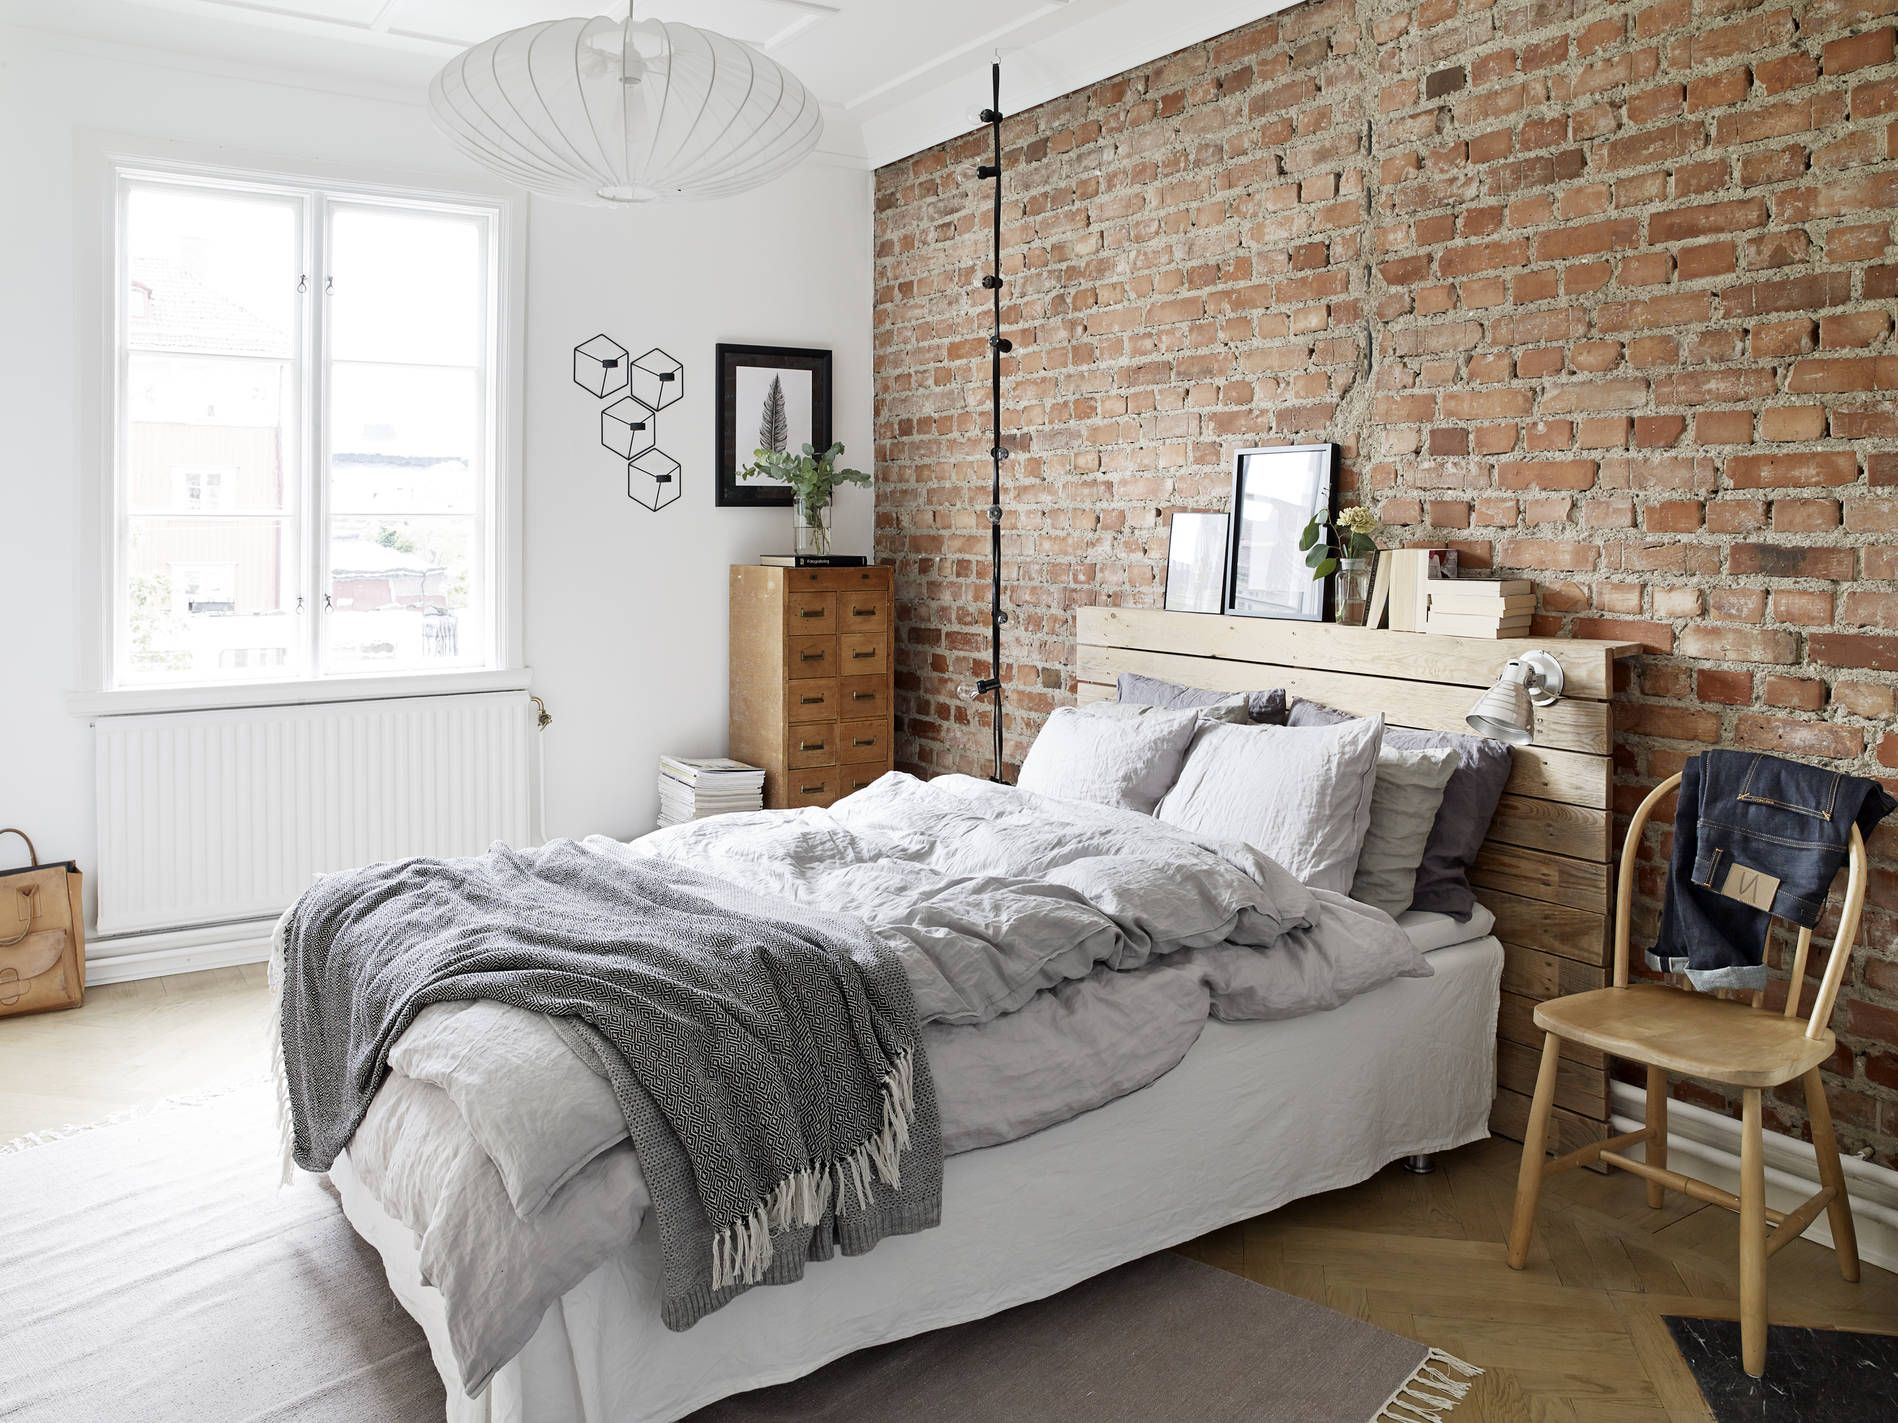 The Combination Of Exposed Brick And Soft White Walls Feels So Homely